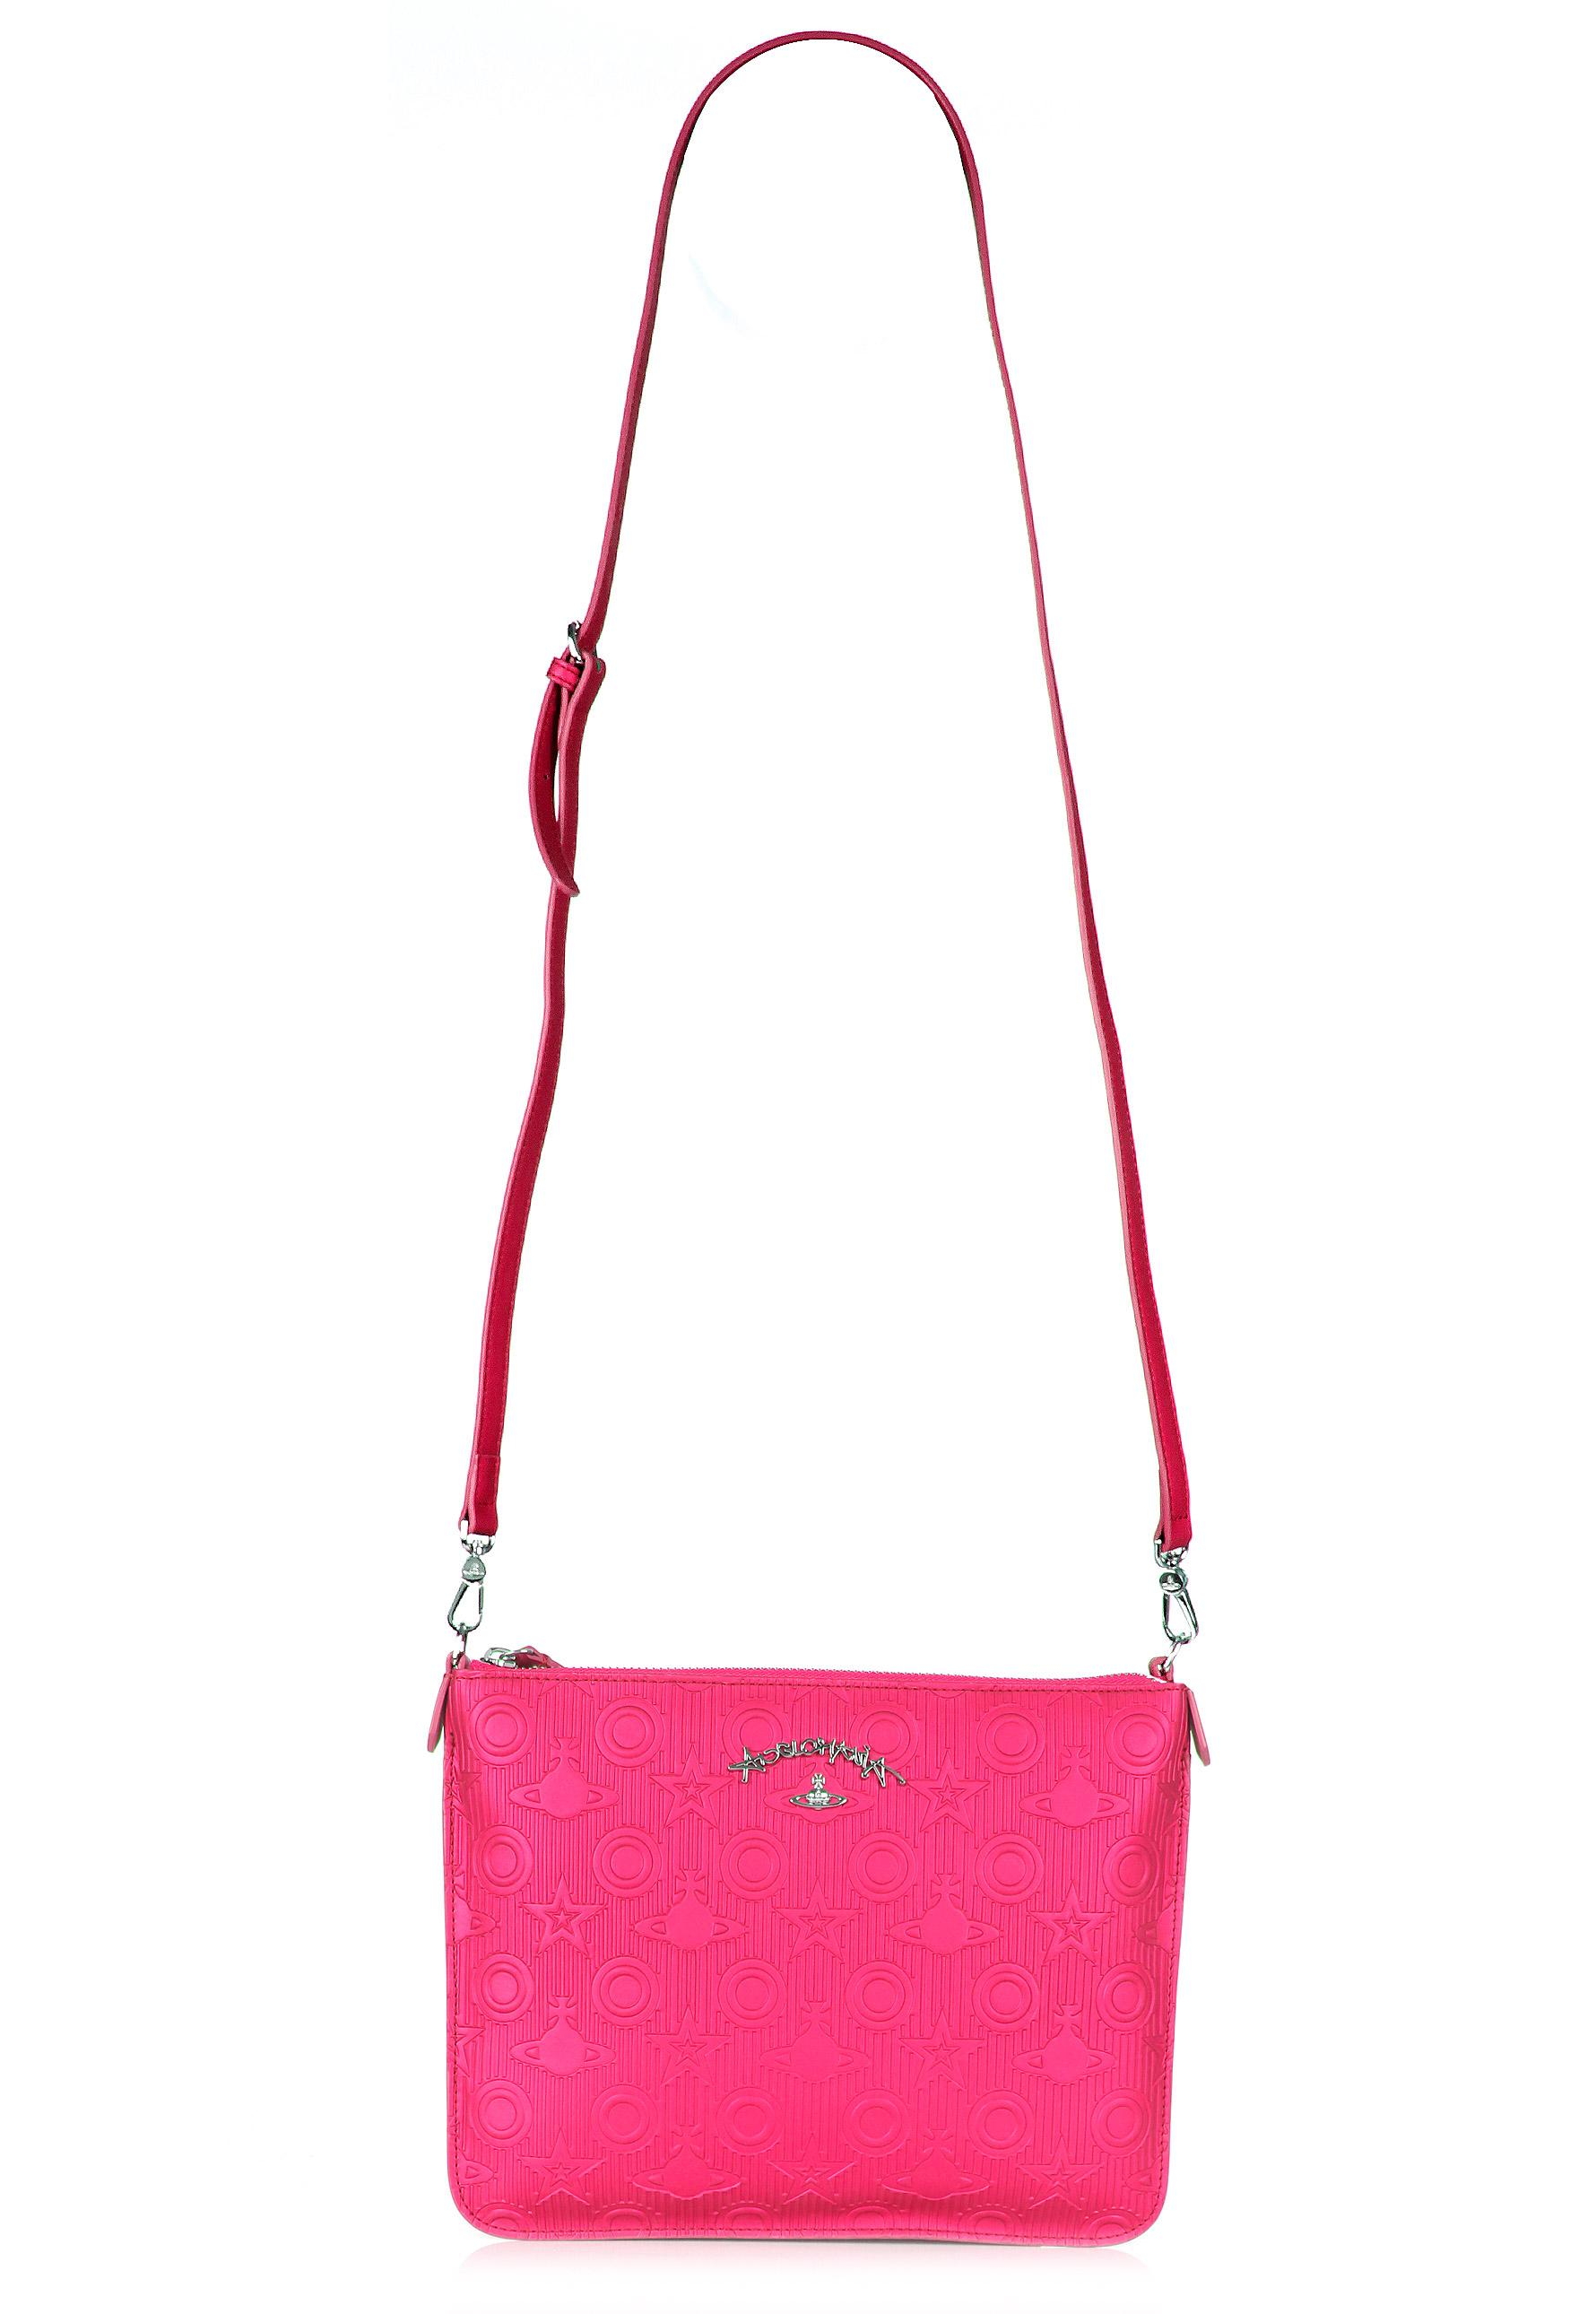 e01606085447 Lyst - Vivienne Westwood Chilham 190009 Crossbody Bag Pink in Pink